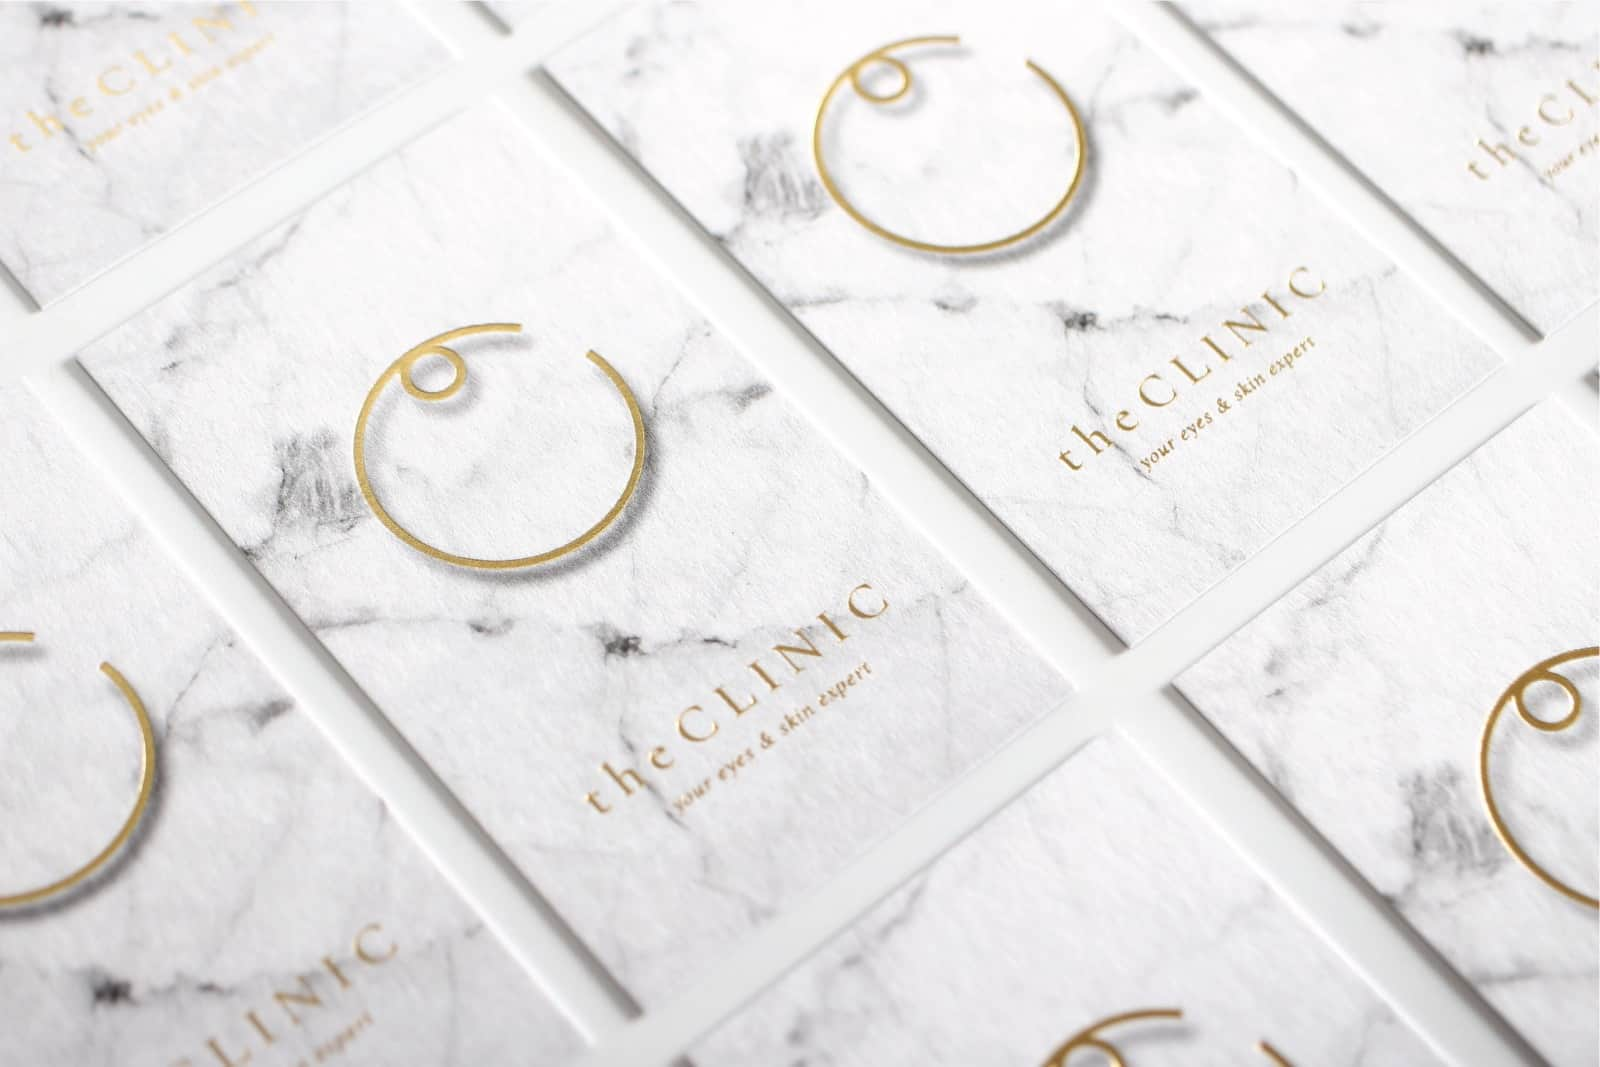 the Clinic   believes beauty comes naturally at any age   Branding design